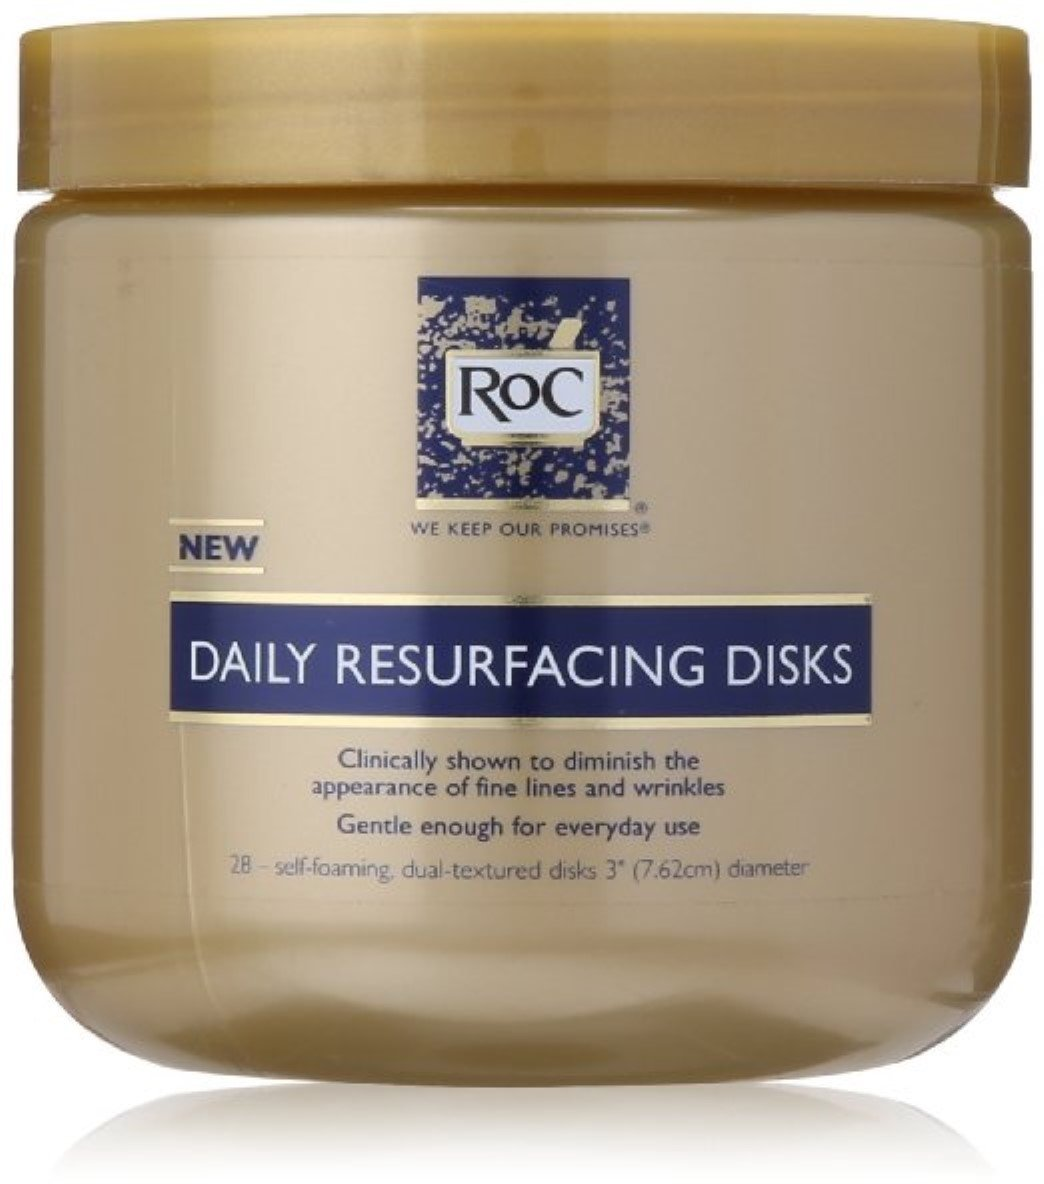 RoC Daily Resurfacing Disks 28 Each (Pack of 10)